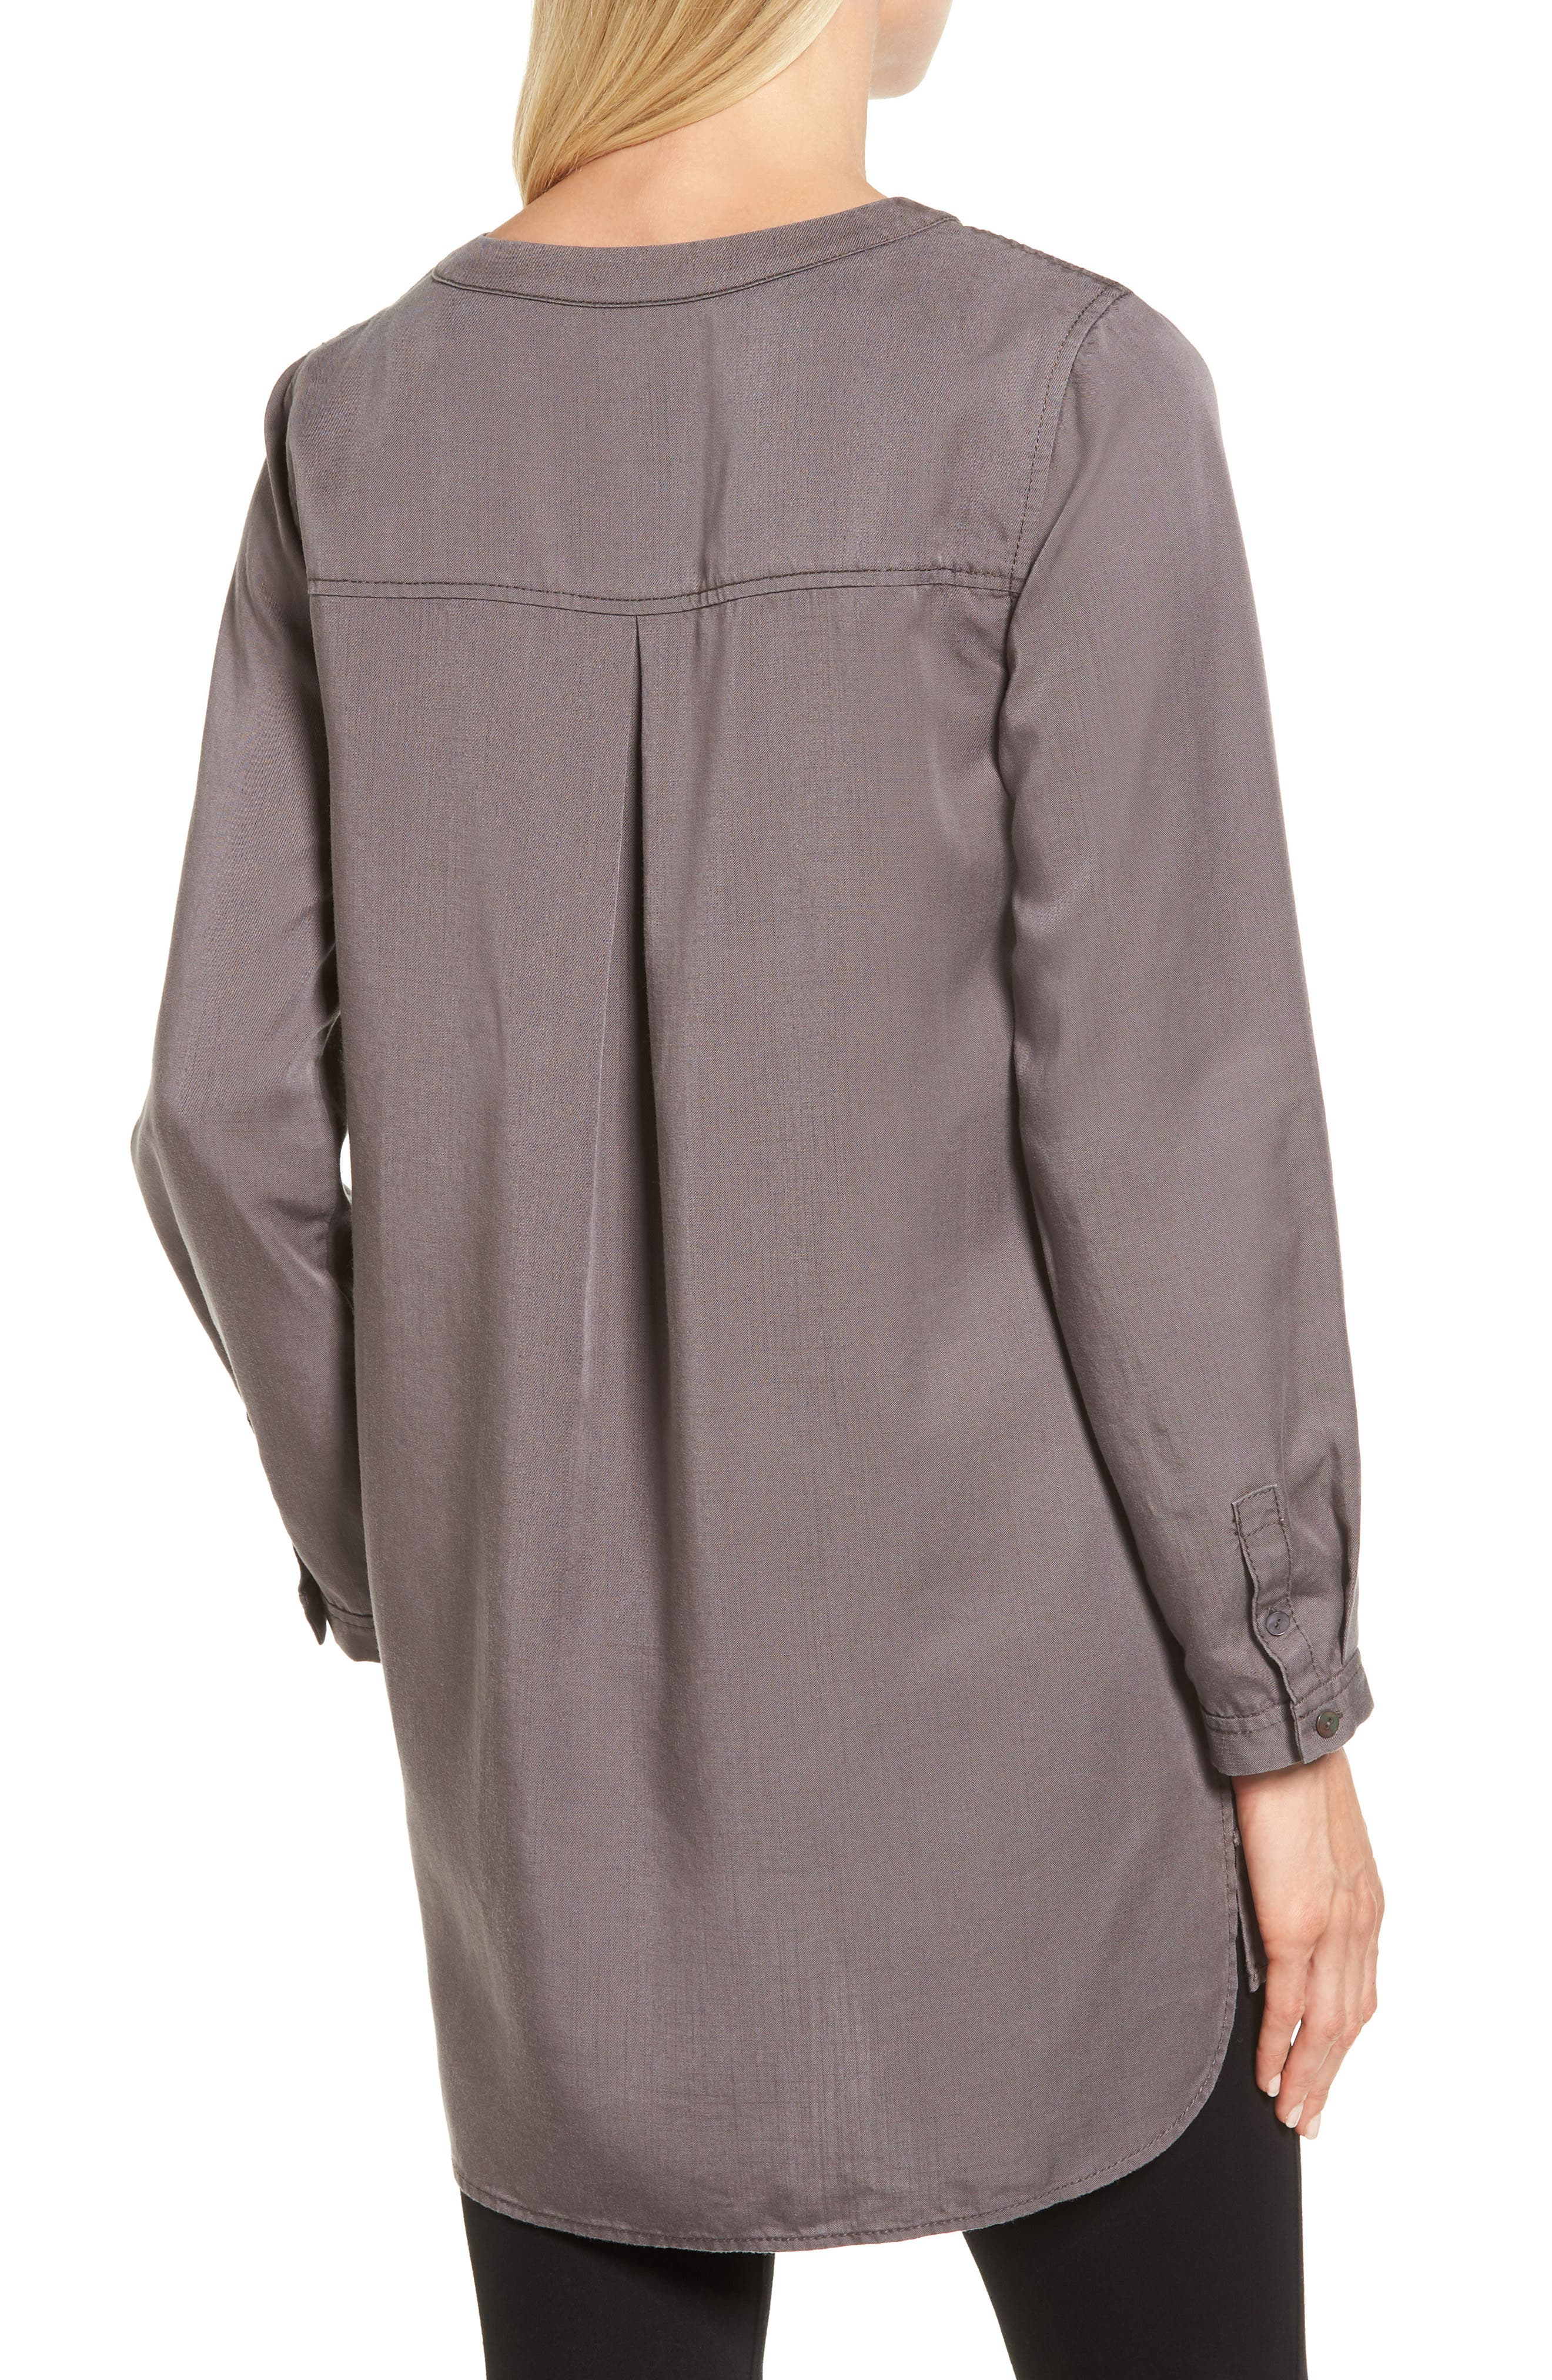 Tranquil Tunic Top,                             Alternate thumbnail 2, color,                             Warm Grey